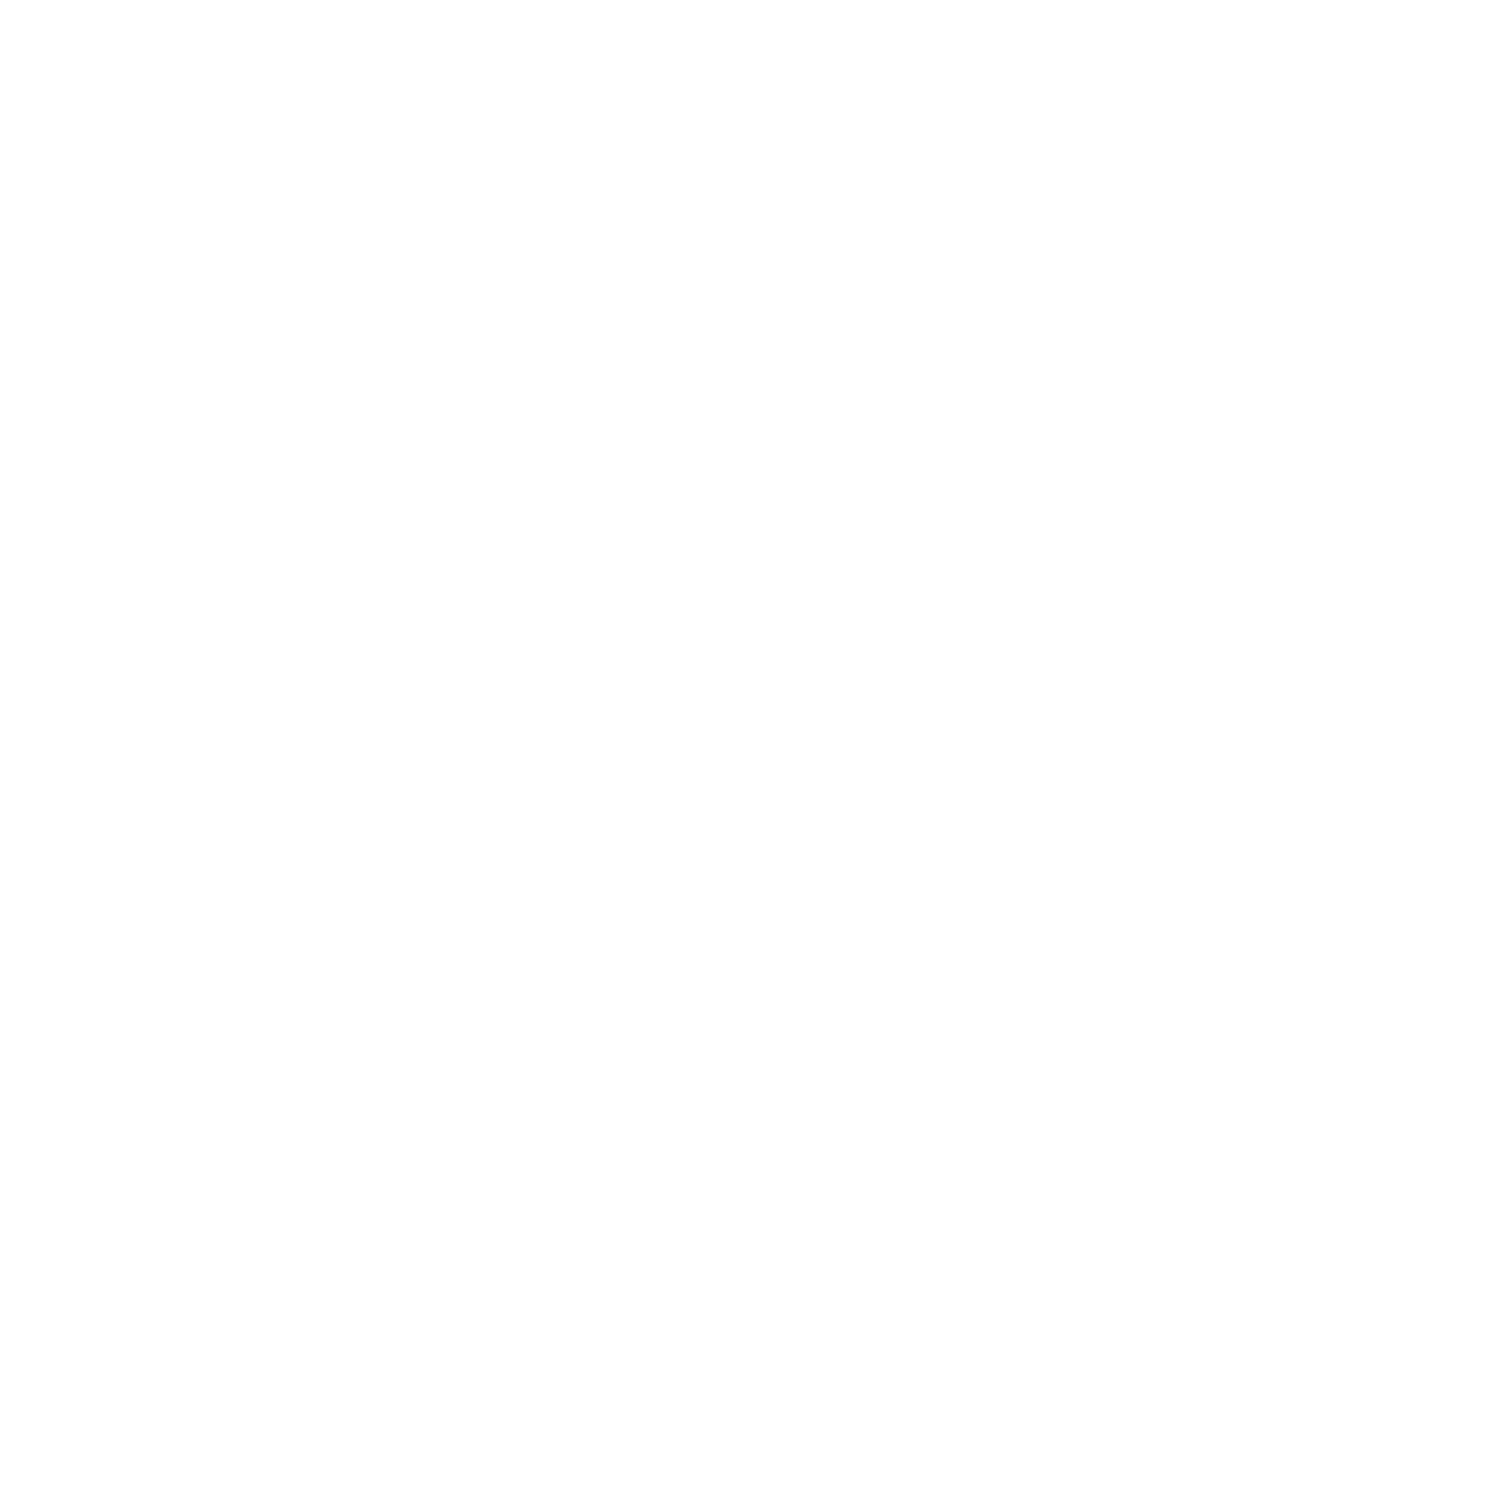 Trident Association Management